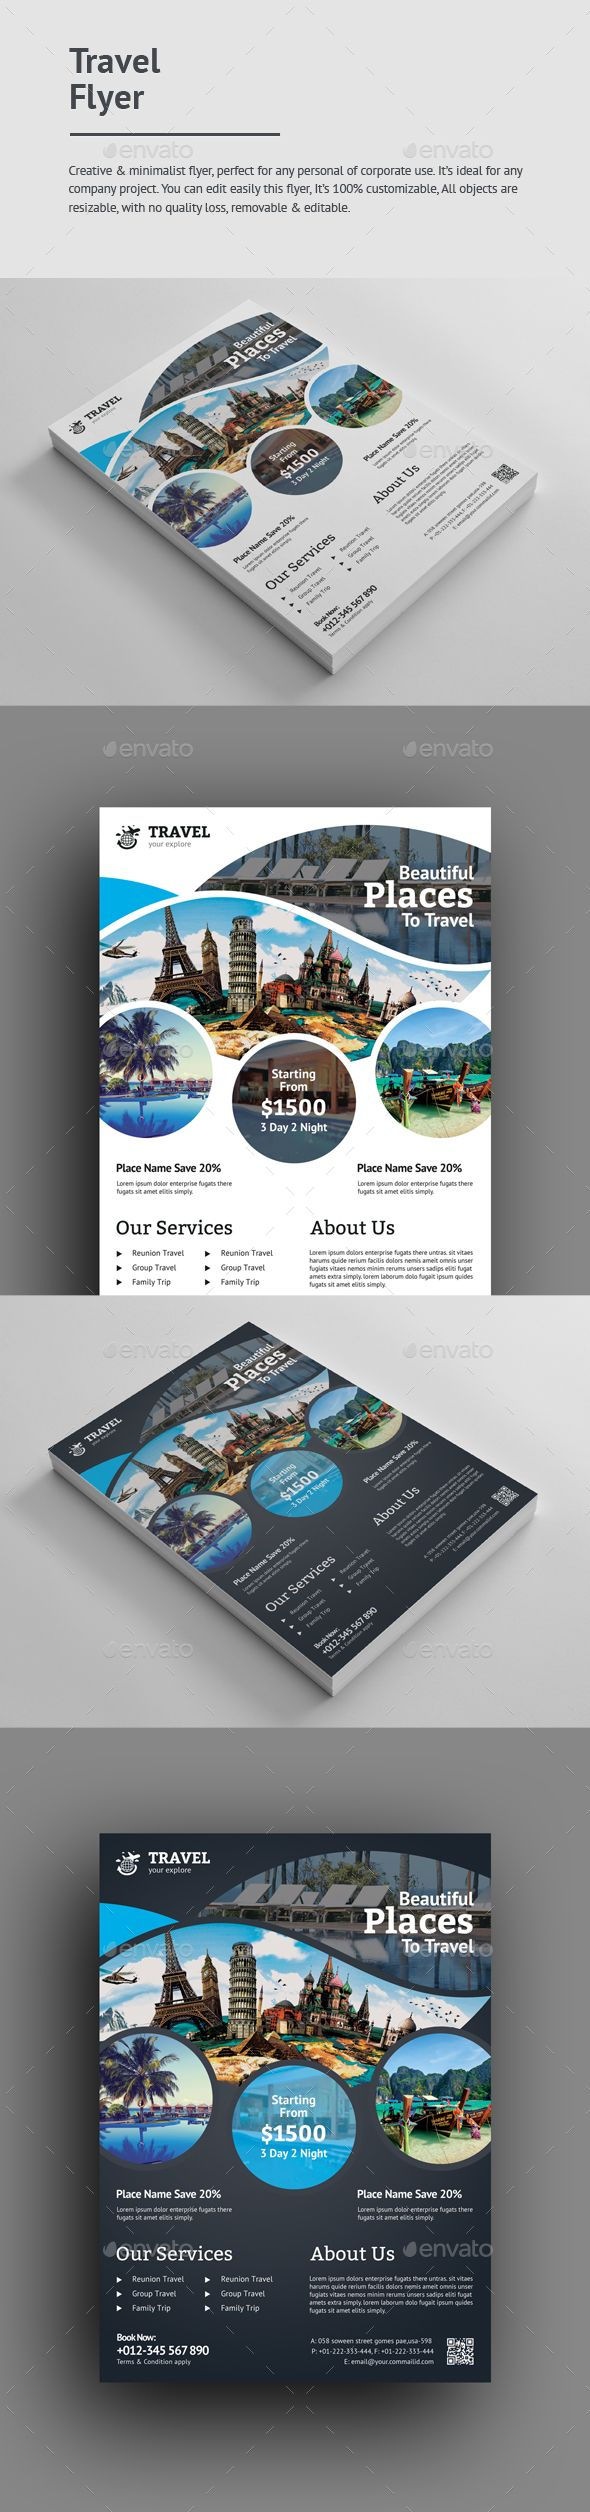 #Travel #Flyer - Holidays Events Download here: https://graphicriver.net/item/travel-flyer/19692750?ref=alena994